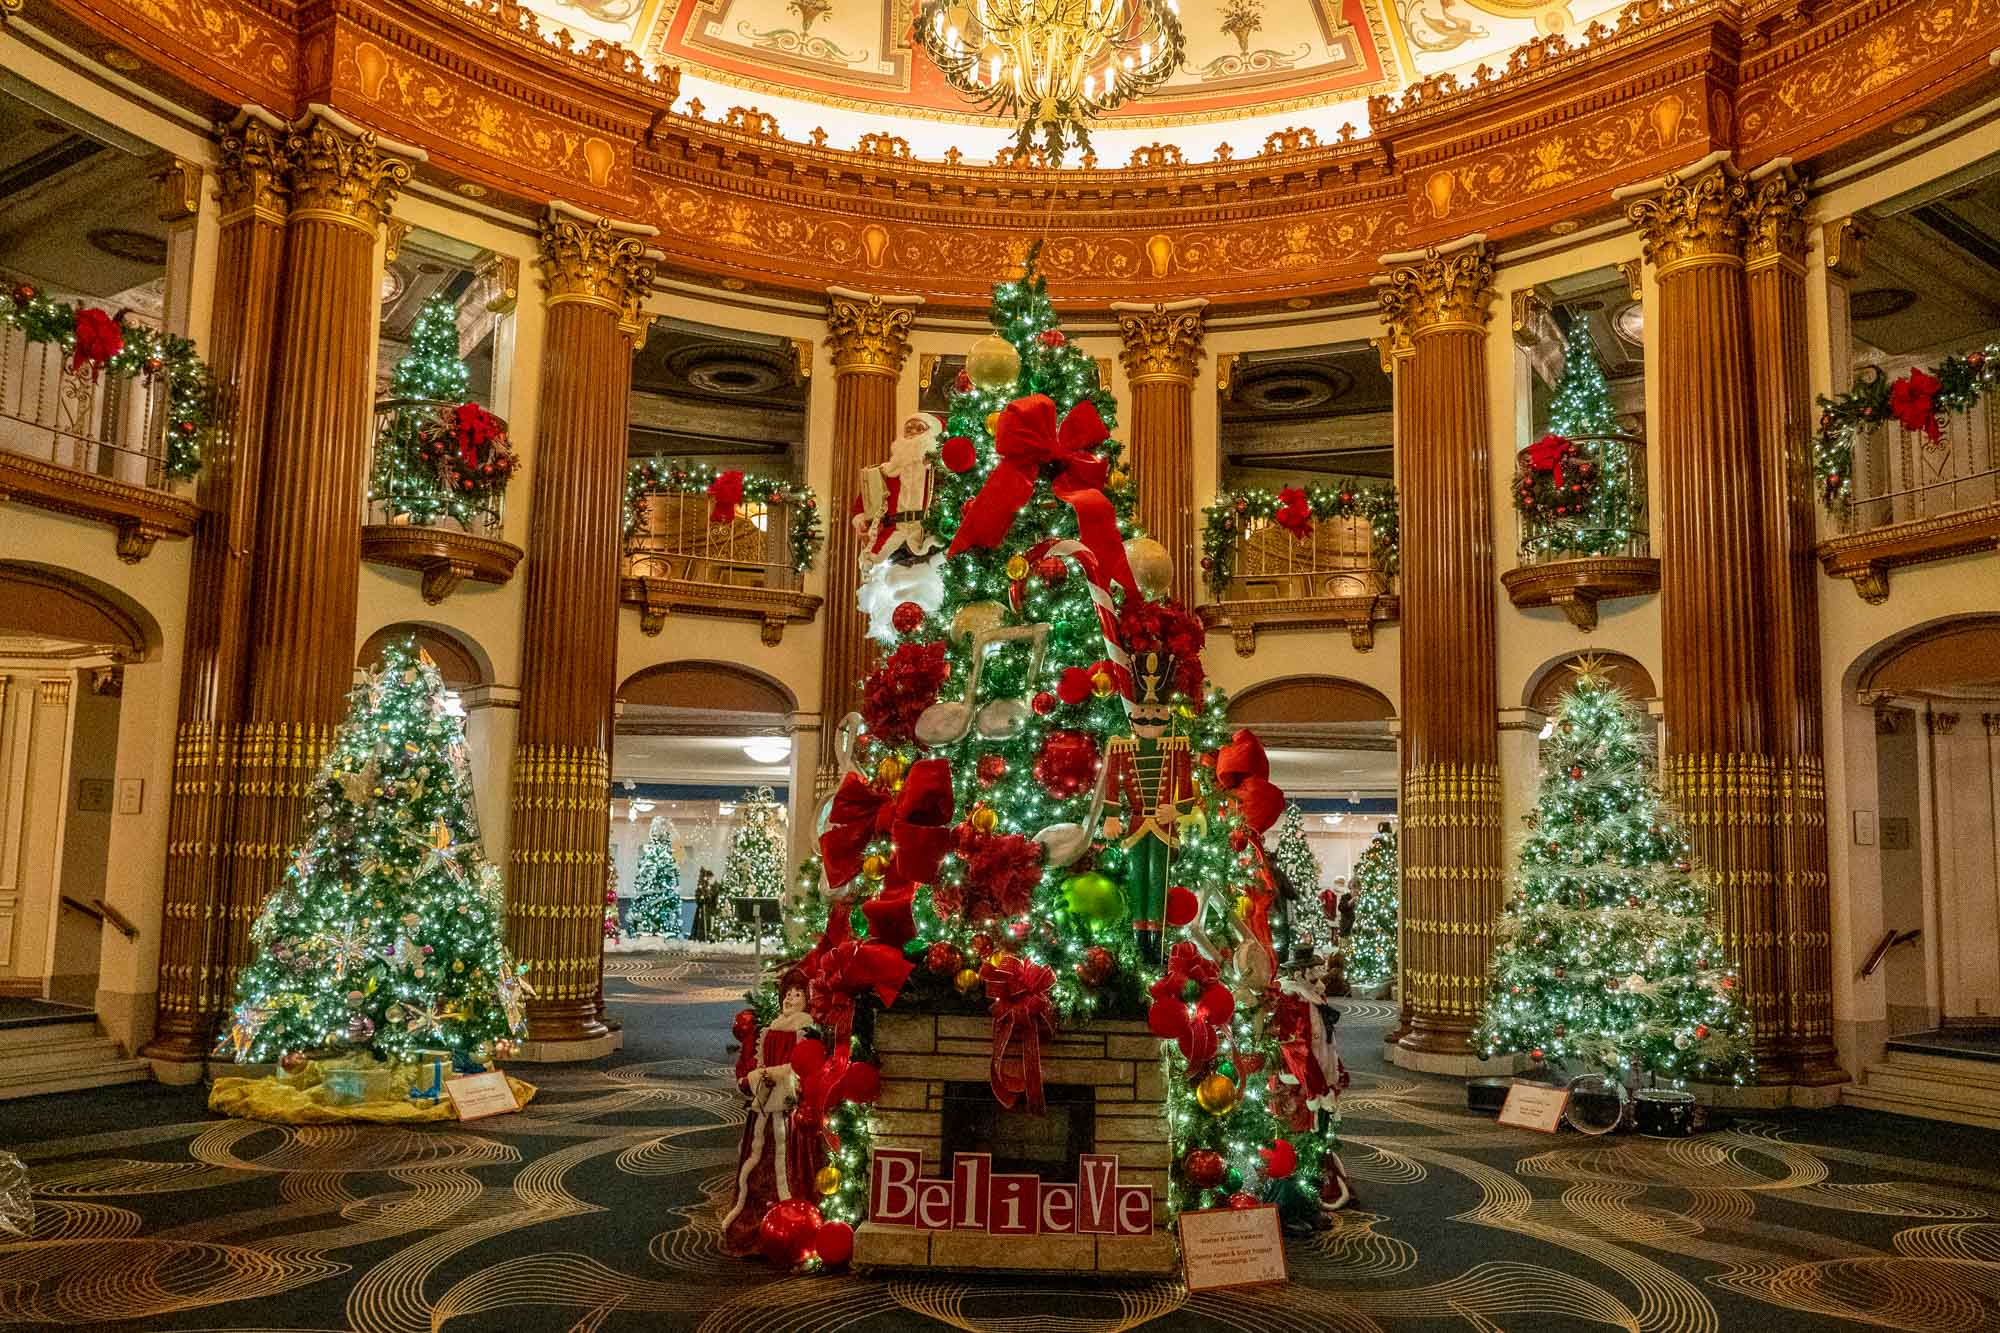 Christmas in Cleveland: 12 Things to Do This Holiday Season